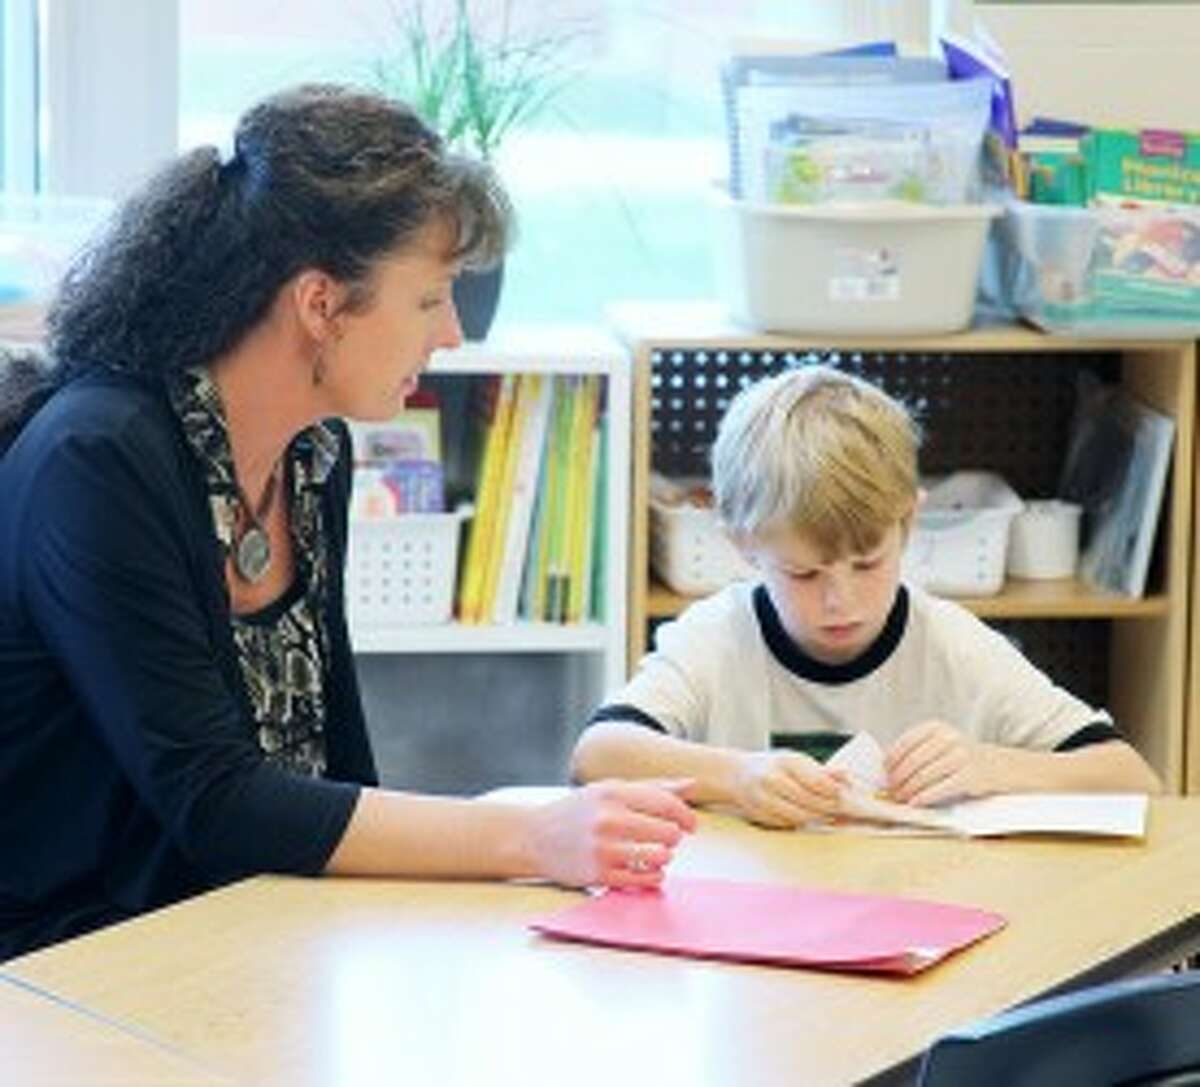 RESPONSE TO INTERVENTION: (On left) Vicky Bowman, a Response To Intervention teacher at G.T. Norman Elementary School, helps a second grader review some reading skills. The Response To Intervention program identifies specific skills students struggle with and provide support to help those students improve. (Herald Review photos/Lauren Fitch)